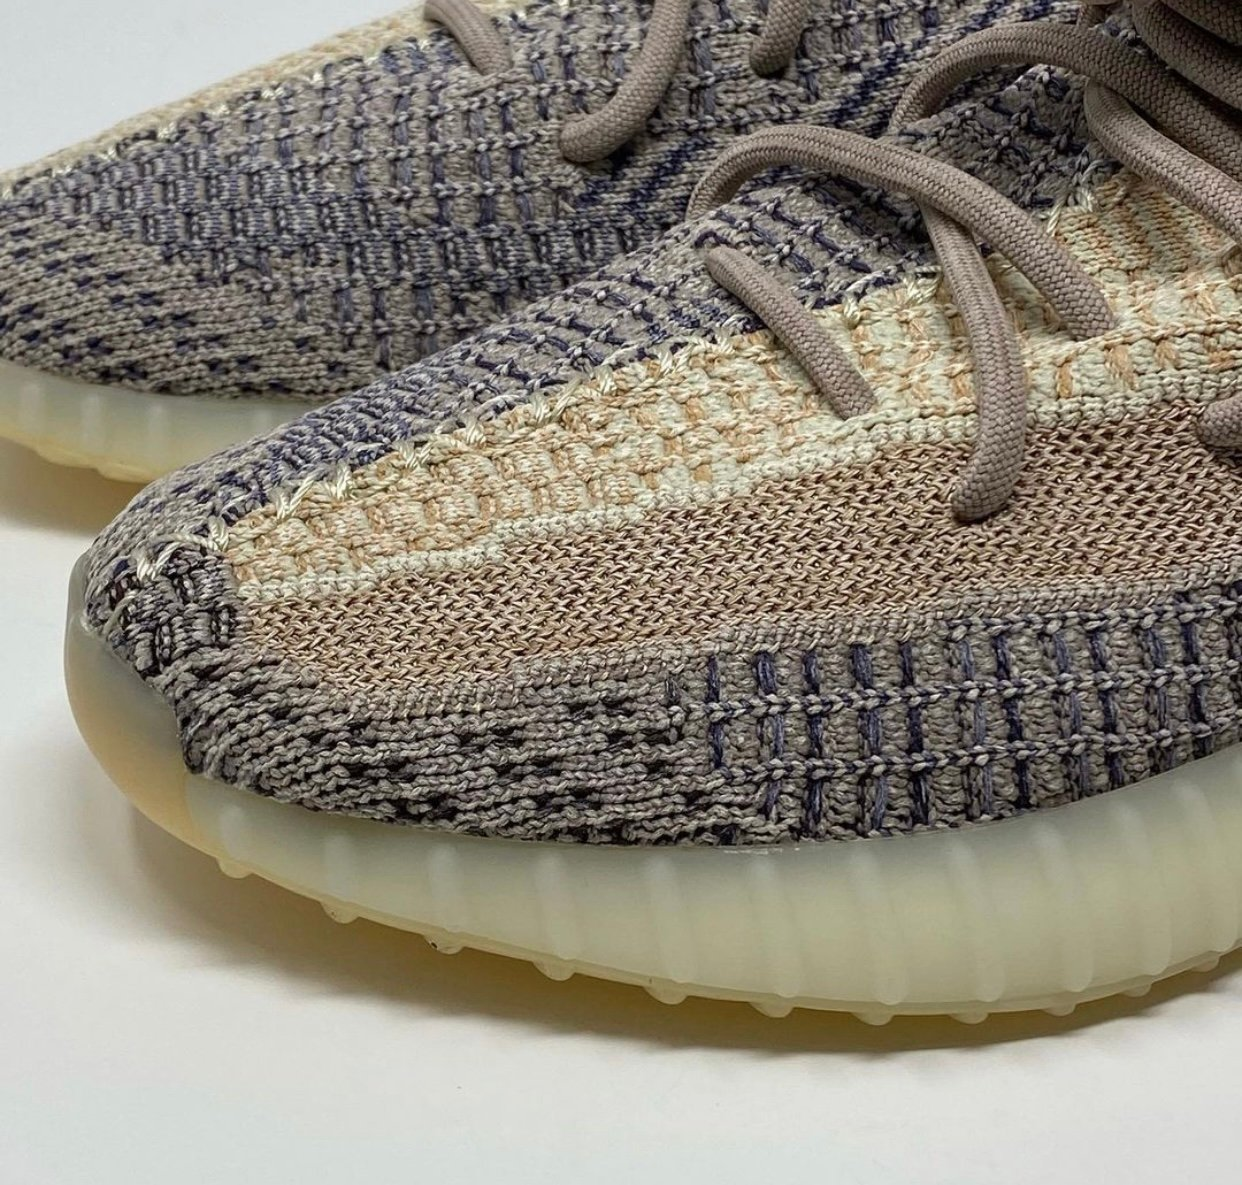 adidas Yeezy Boost 350 V2 Ash Pearl GY7658 Release Info